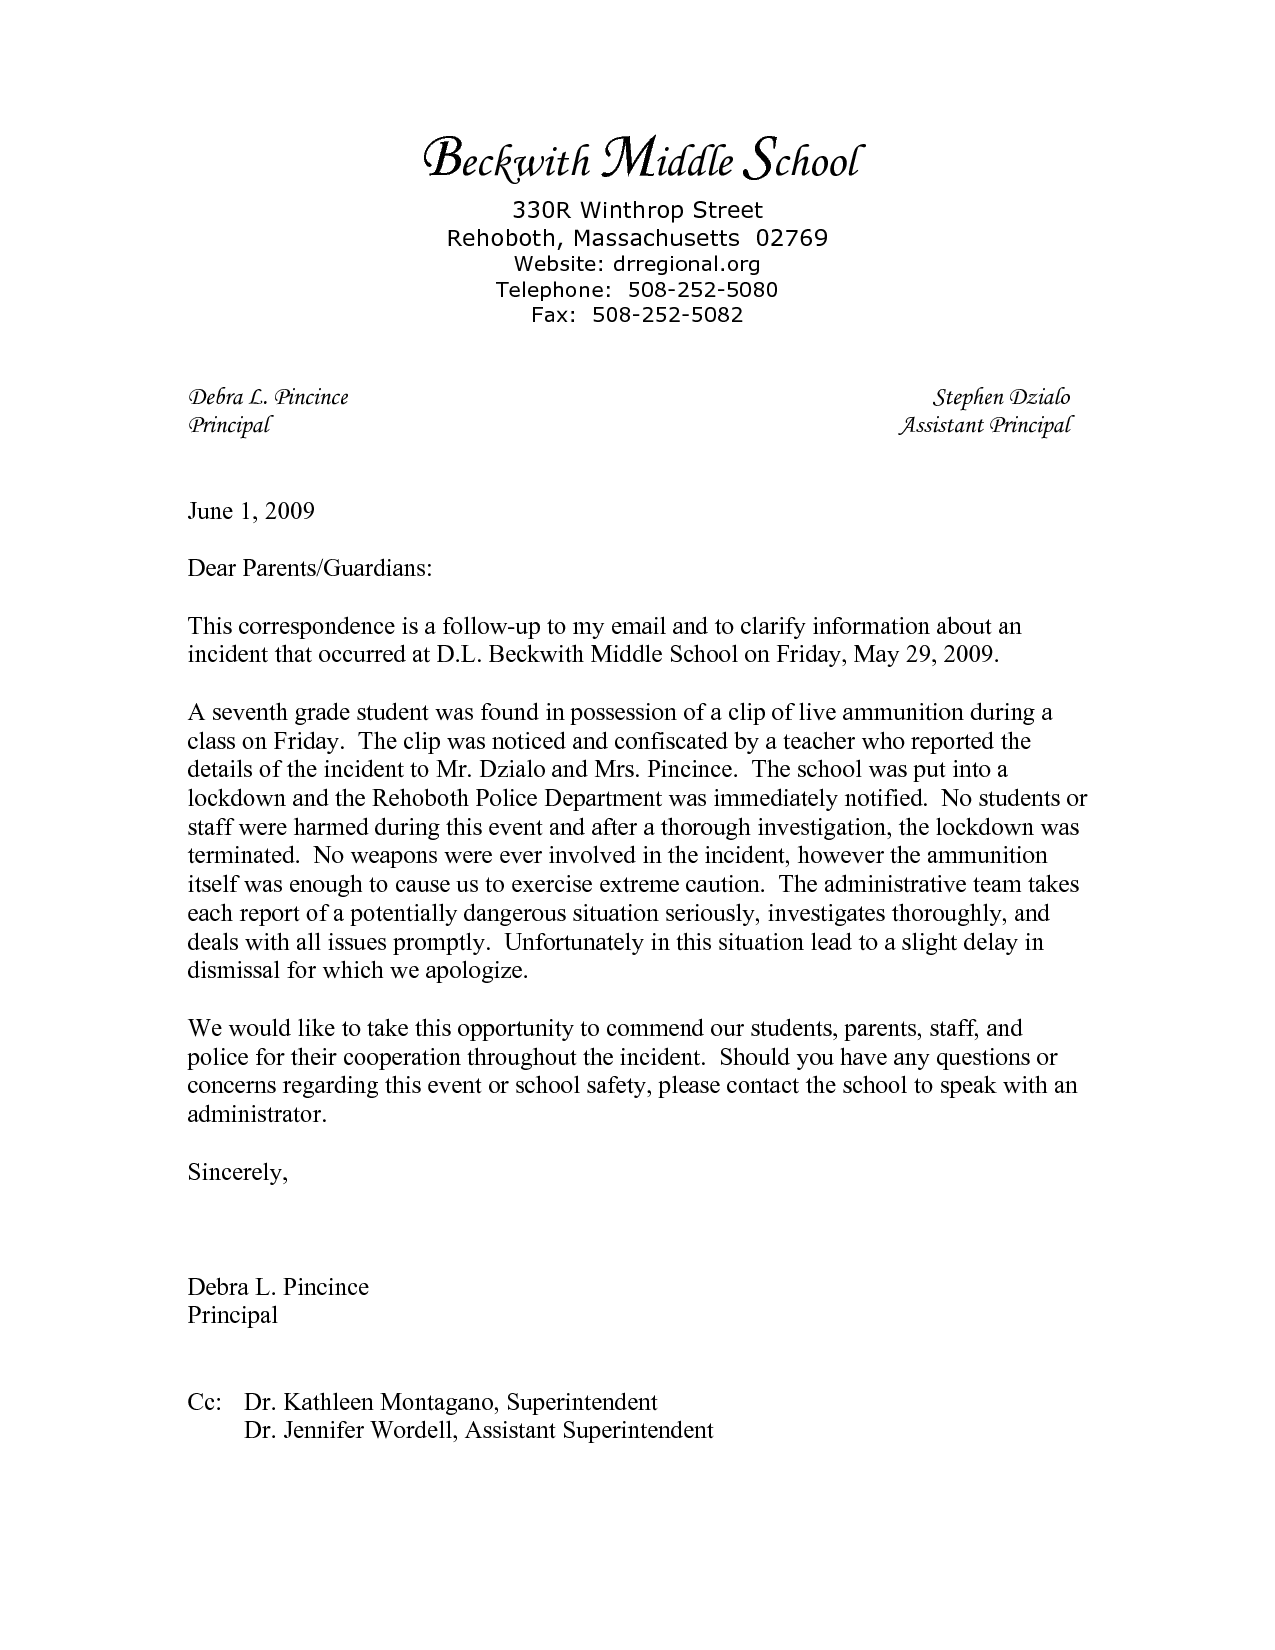 Sample Of Incident Report Letter In School Yahoo Image